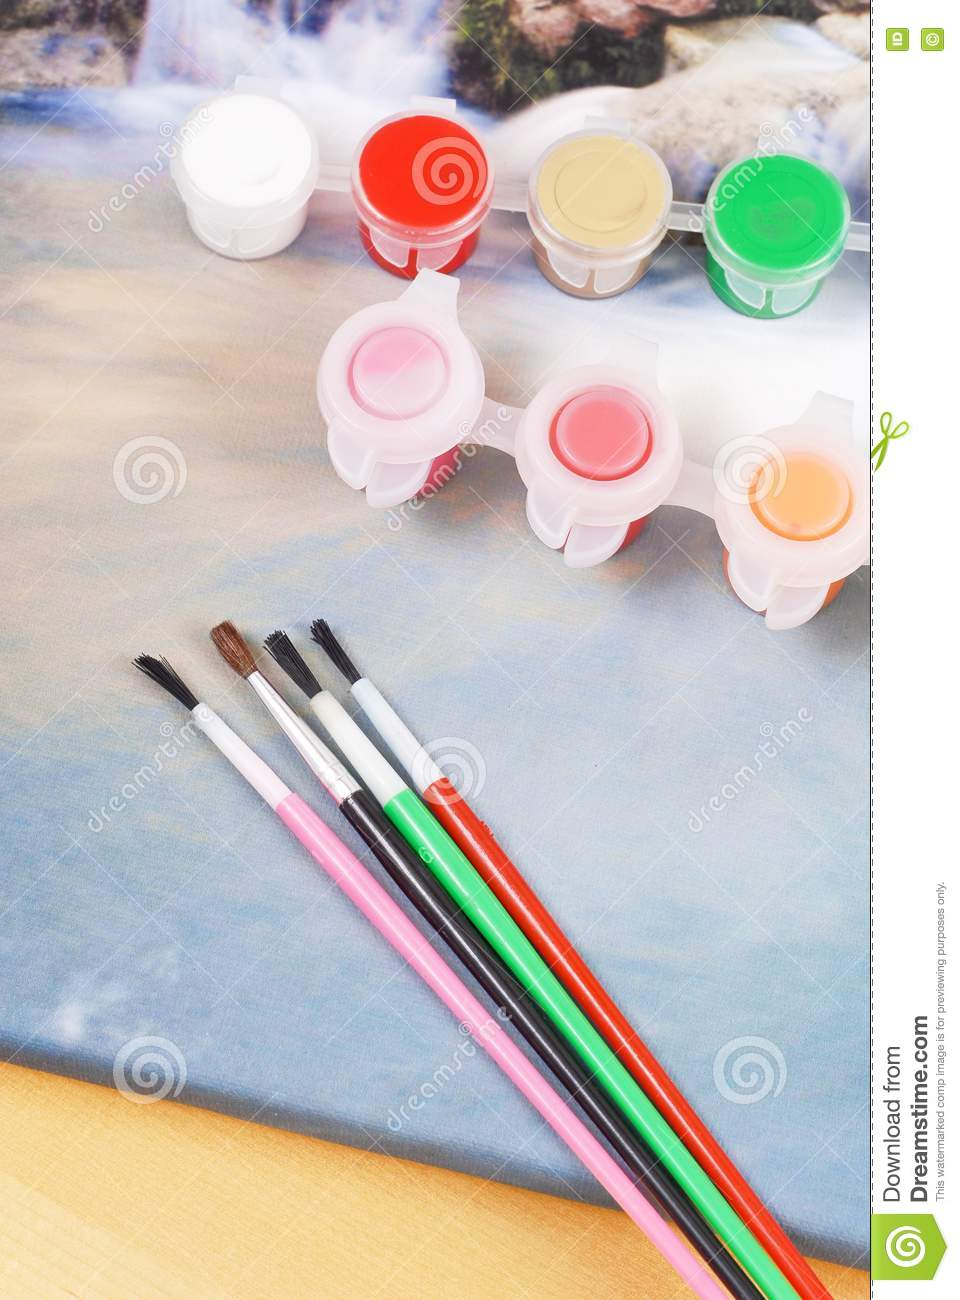 Canvas art painting stock photo image 20008850 for Canvas painting supplies